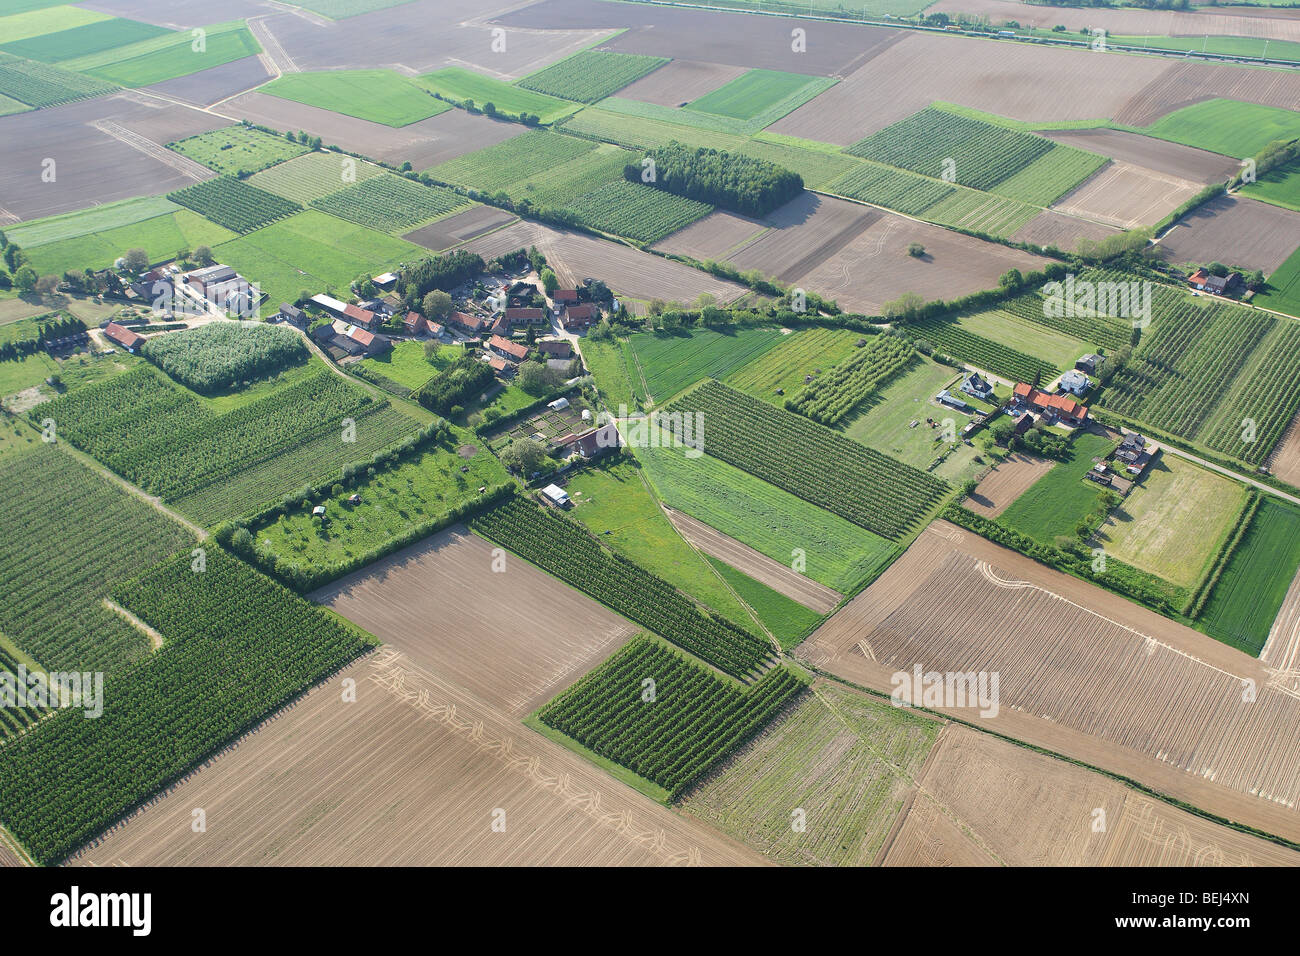 Urbanisation at the border of agricultural area with fields, grasslands and hedges from the air, Belgium Stock Photo